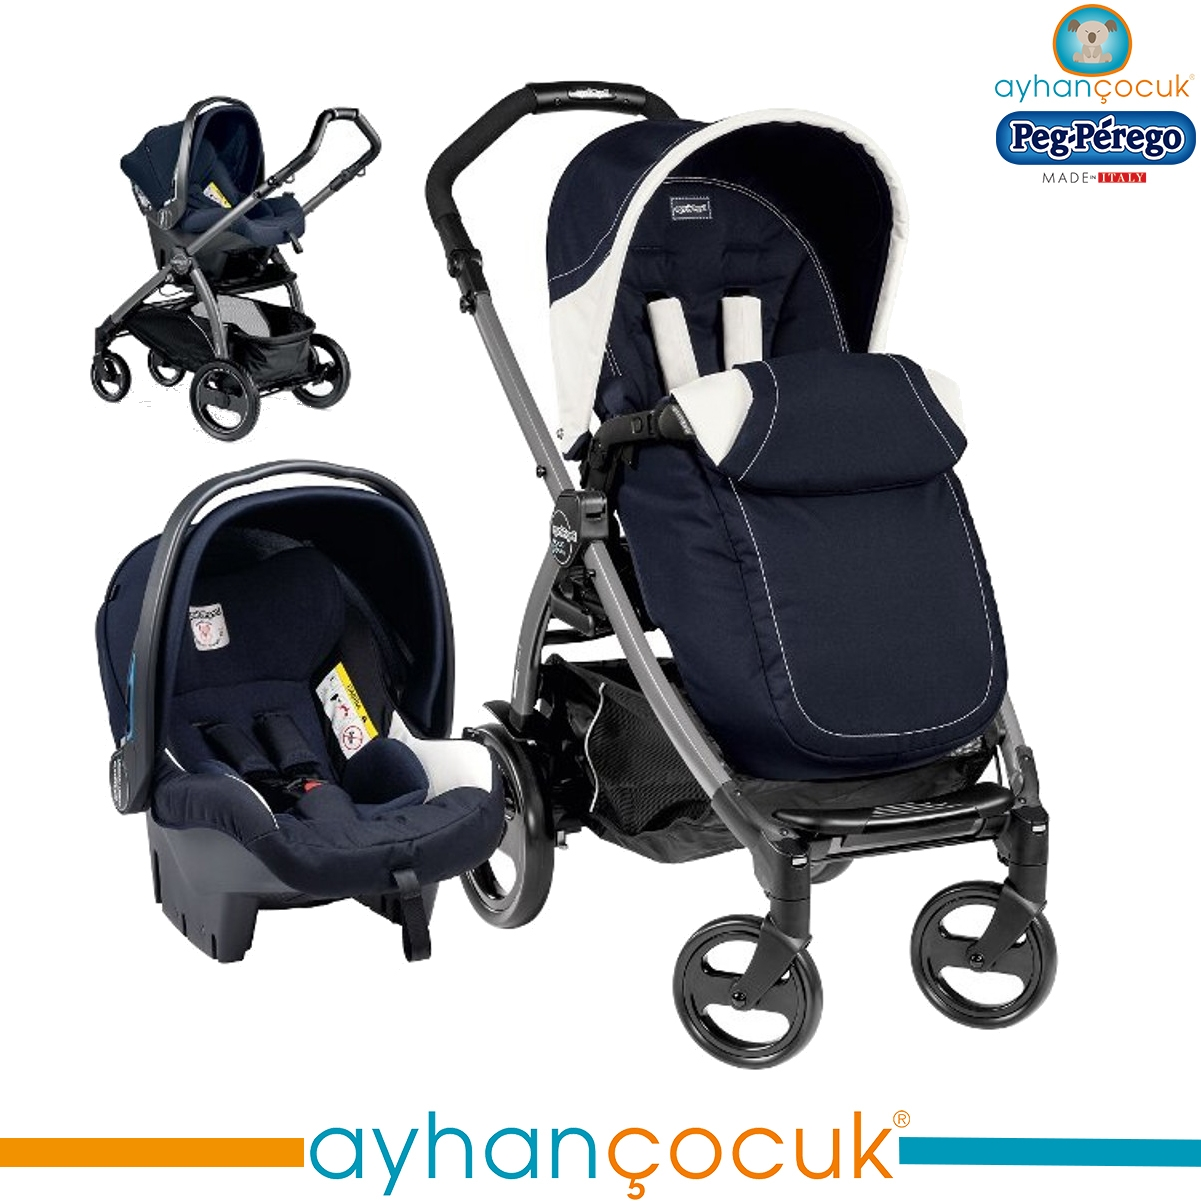 Peg Perego Book 51 Completo Yorum Peg Perego Book Plus 51 Completo Travel Sistem Bebek Arabası